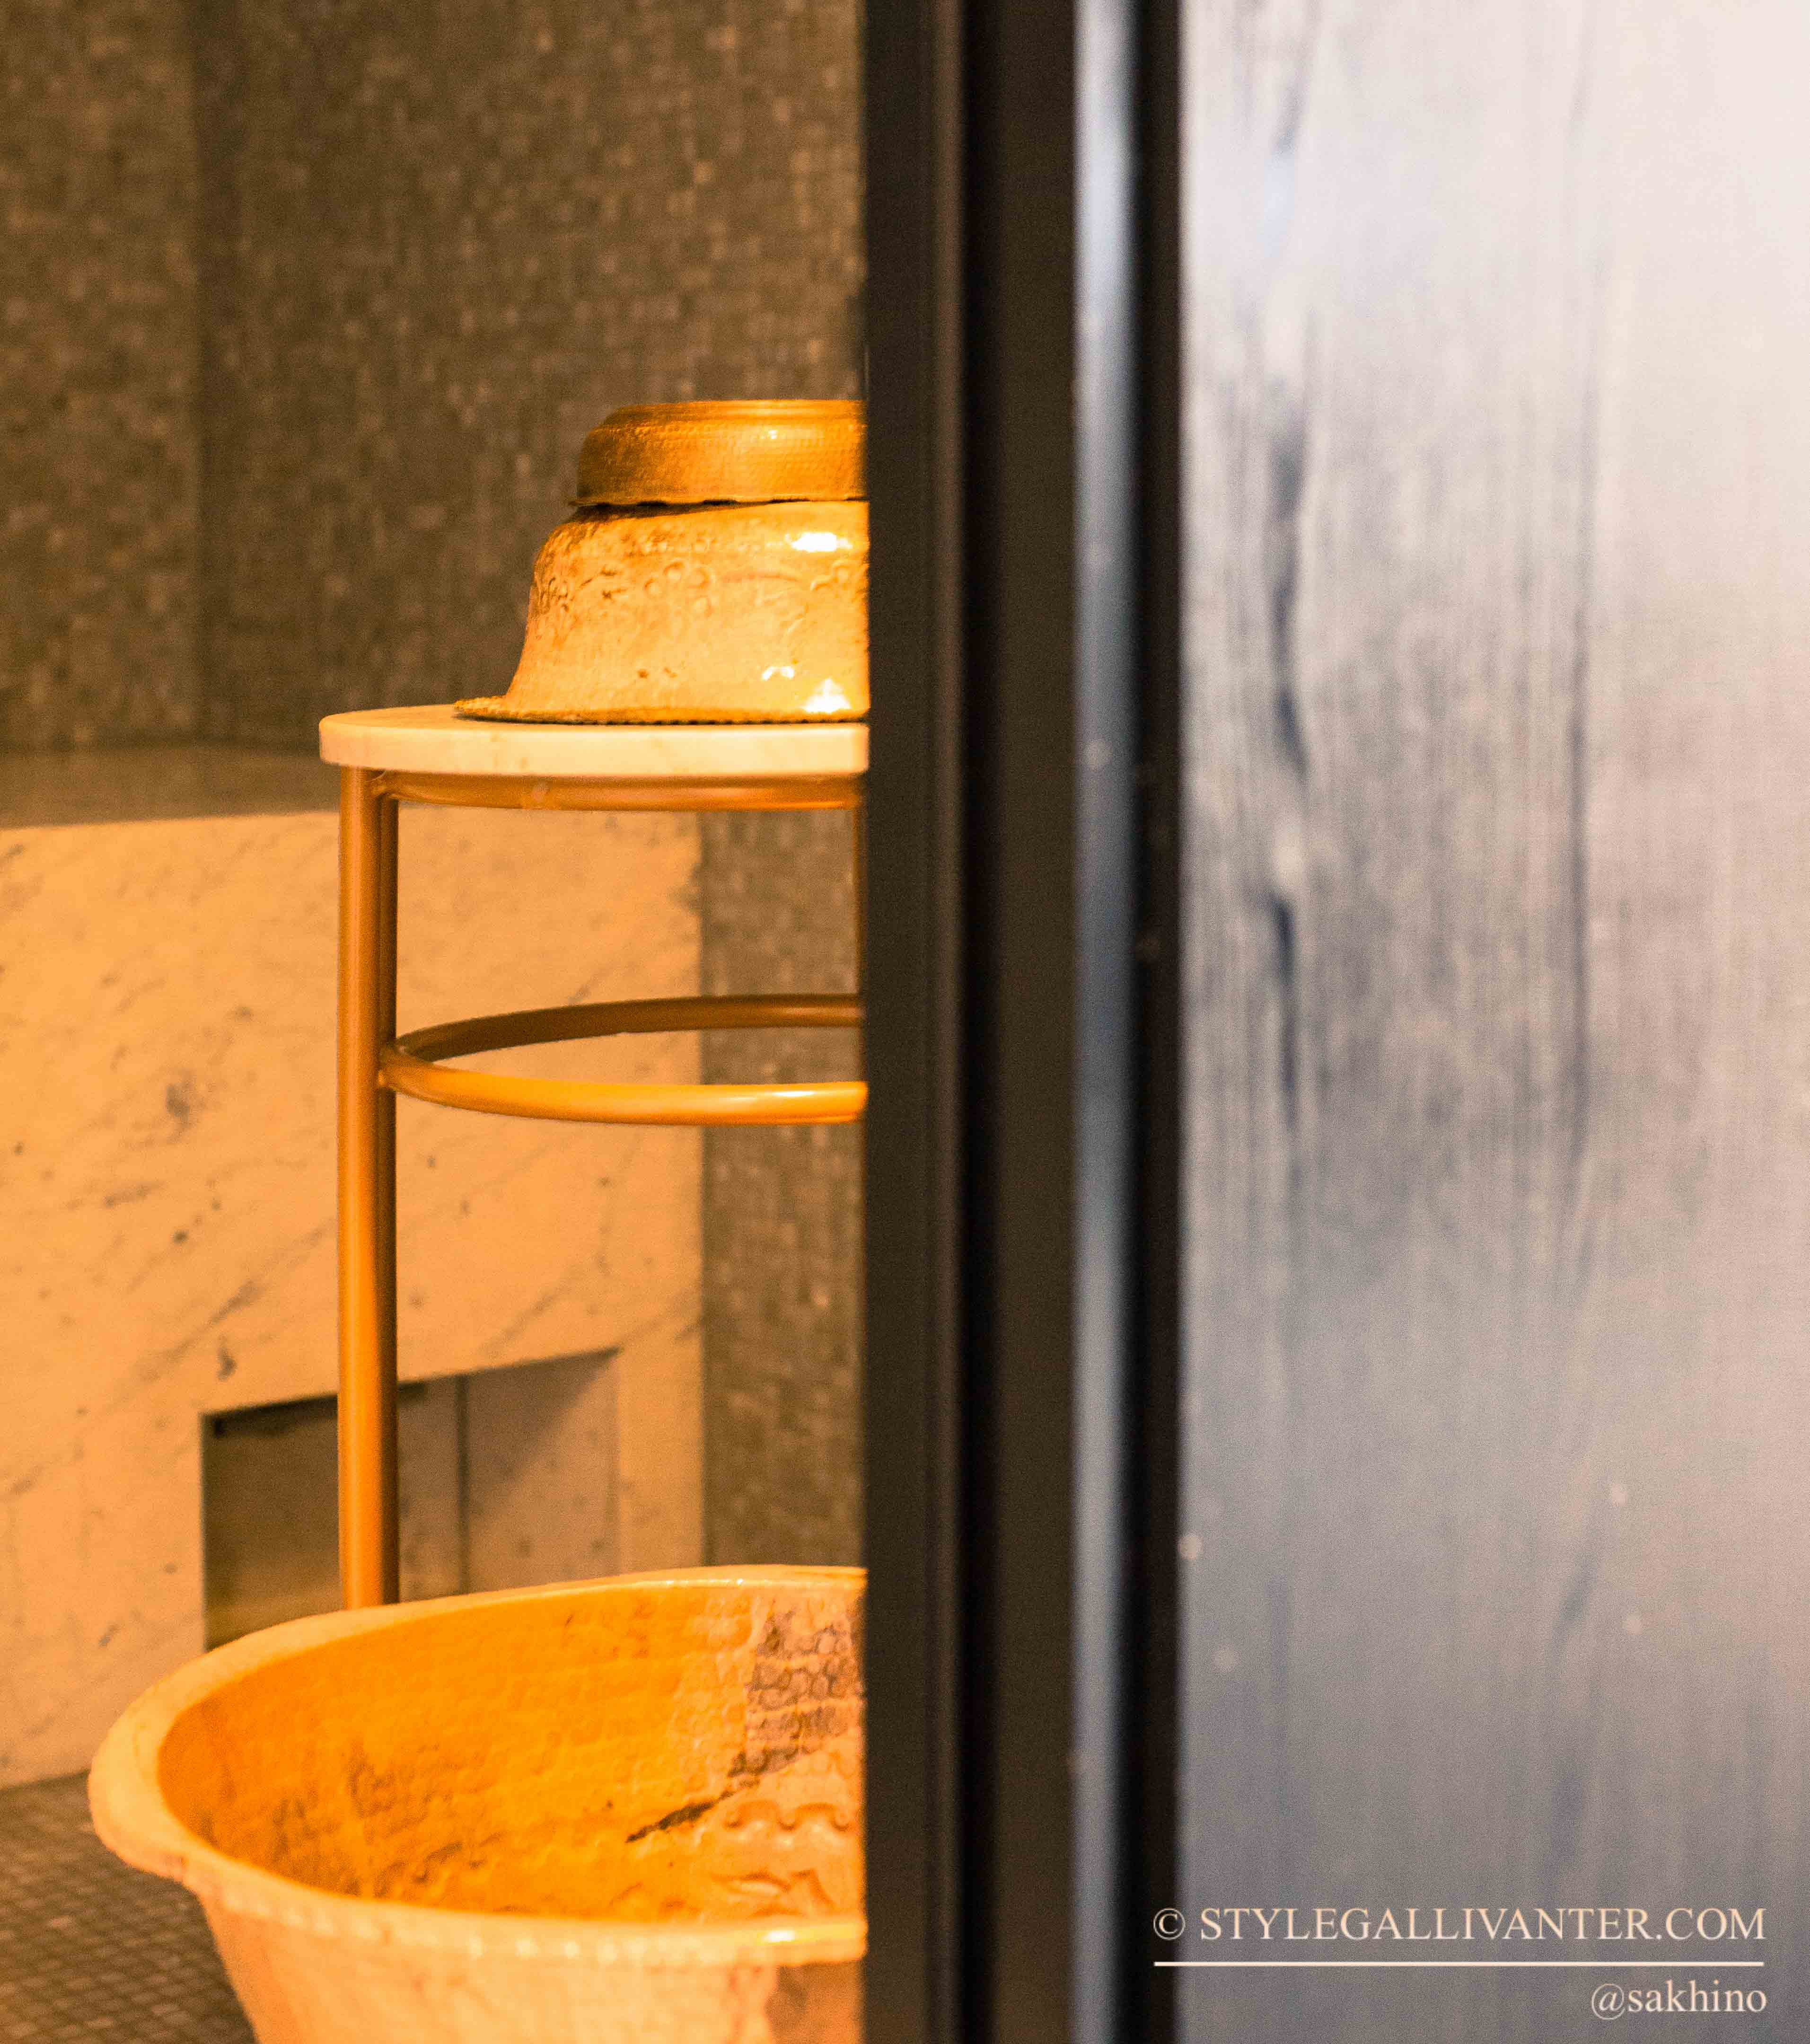 melbourne's-best-beauty-wellness-spa_amara-wellness-centre_zara-celik_endermotherapie-melbourne_australia_huber-motion-lab_best-moroccan-hammam-melbourne_top-turkish-hammam-melbourne-10